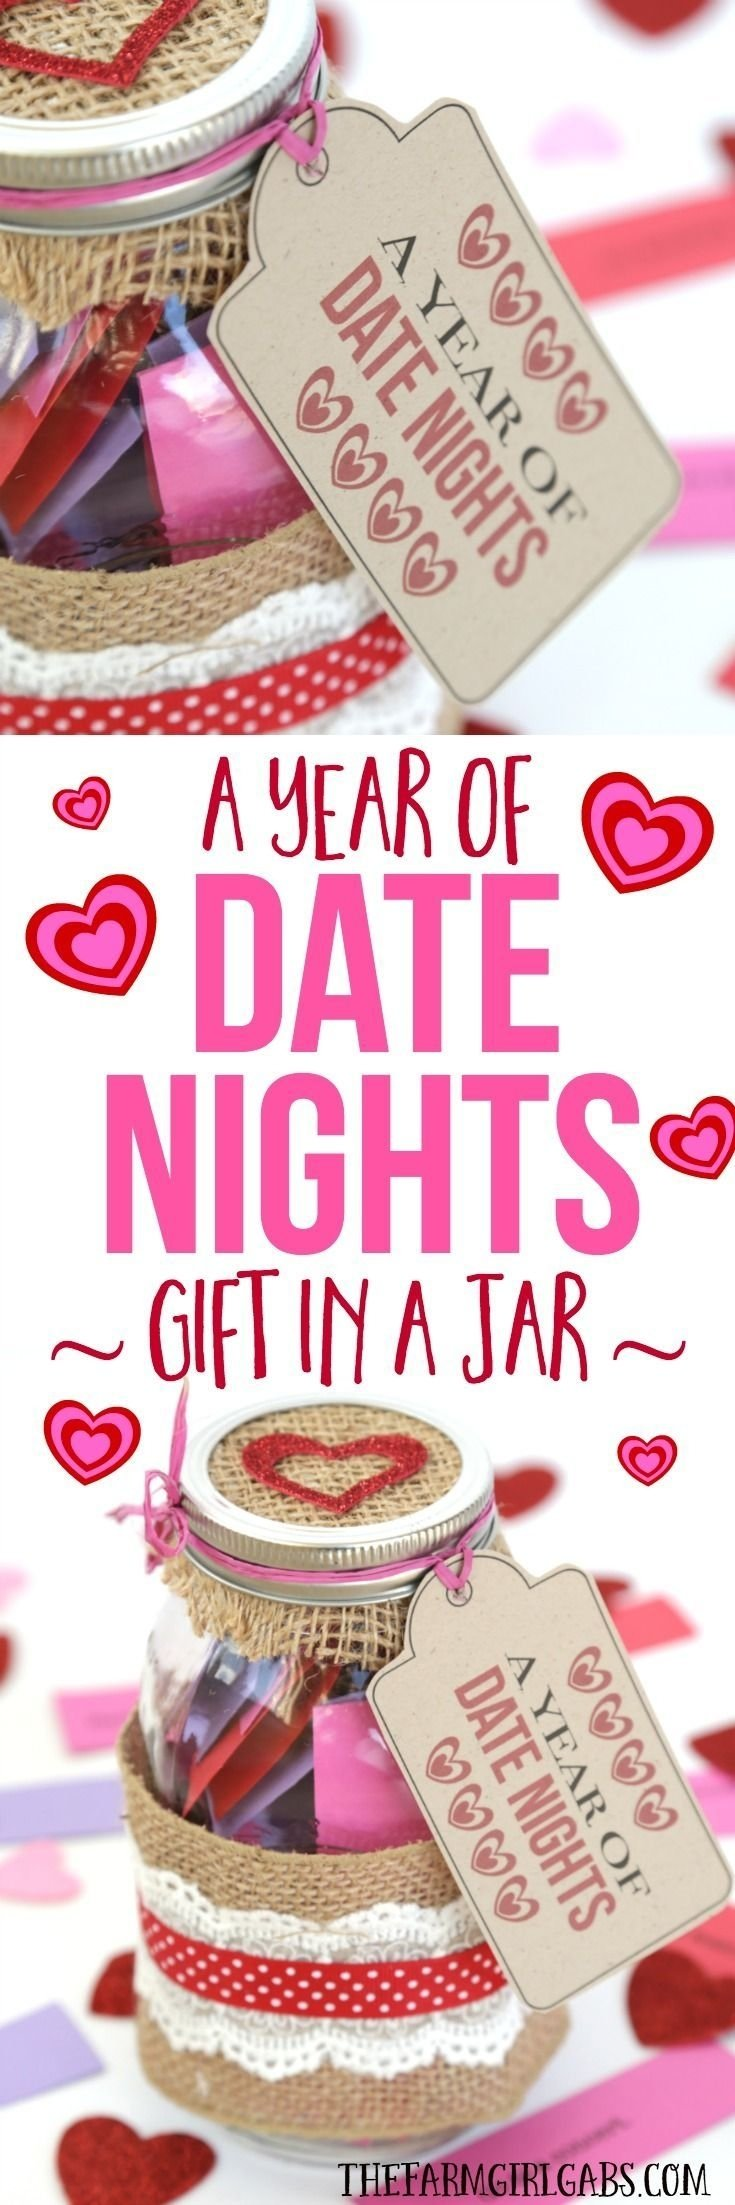 10 Amazing Romantic Date Ideas In Phoenix 974 best date night on a budget images on pinterest a romantic 2020